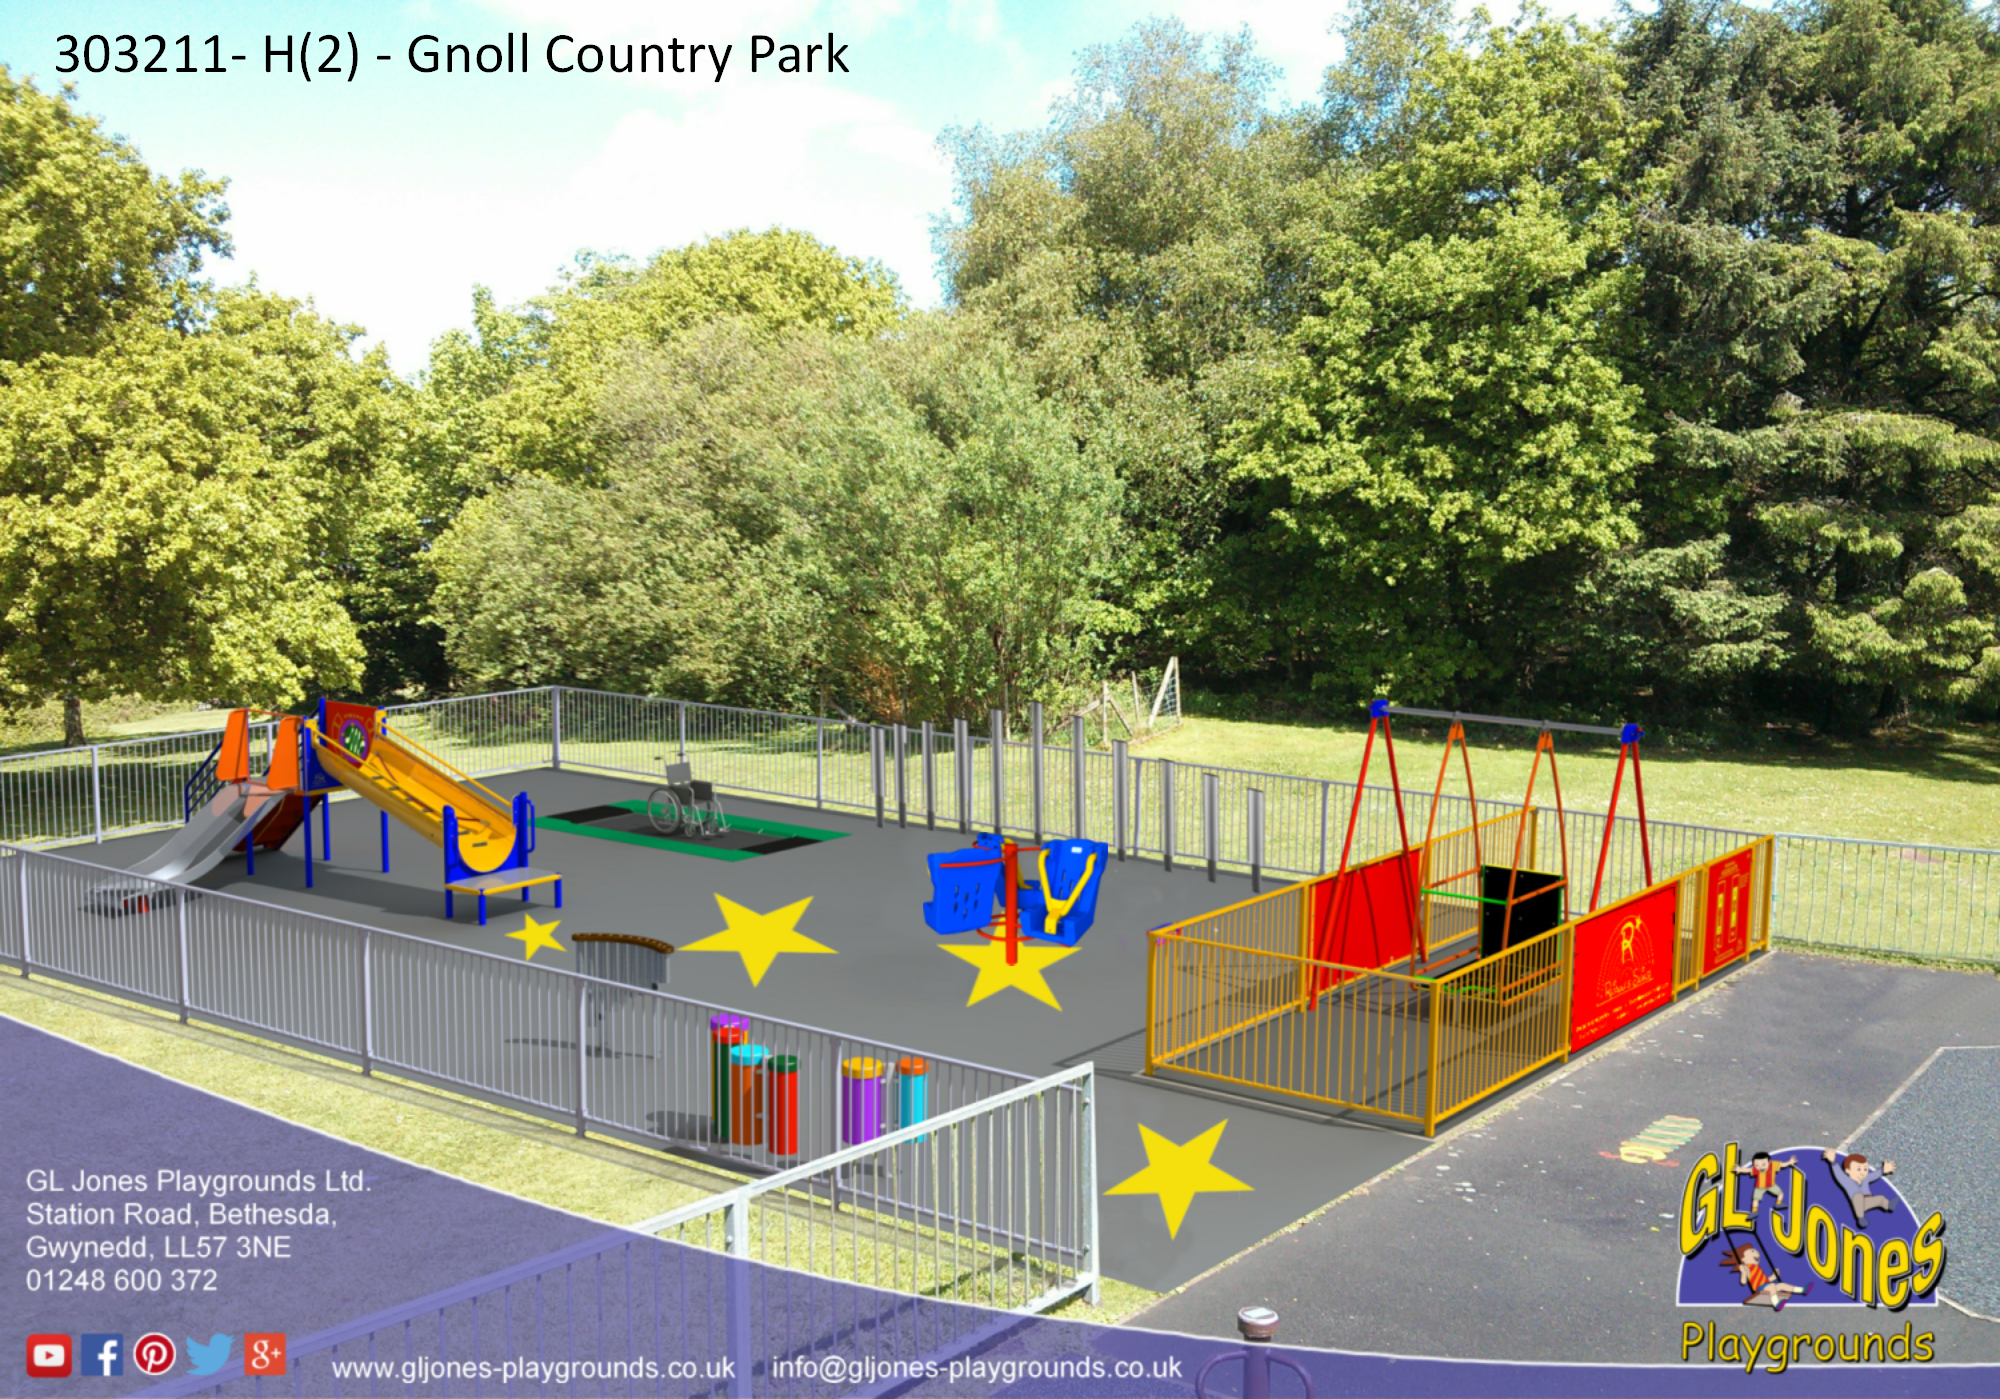 Work Set to Start on New Park at the Gnoll